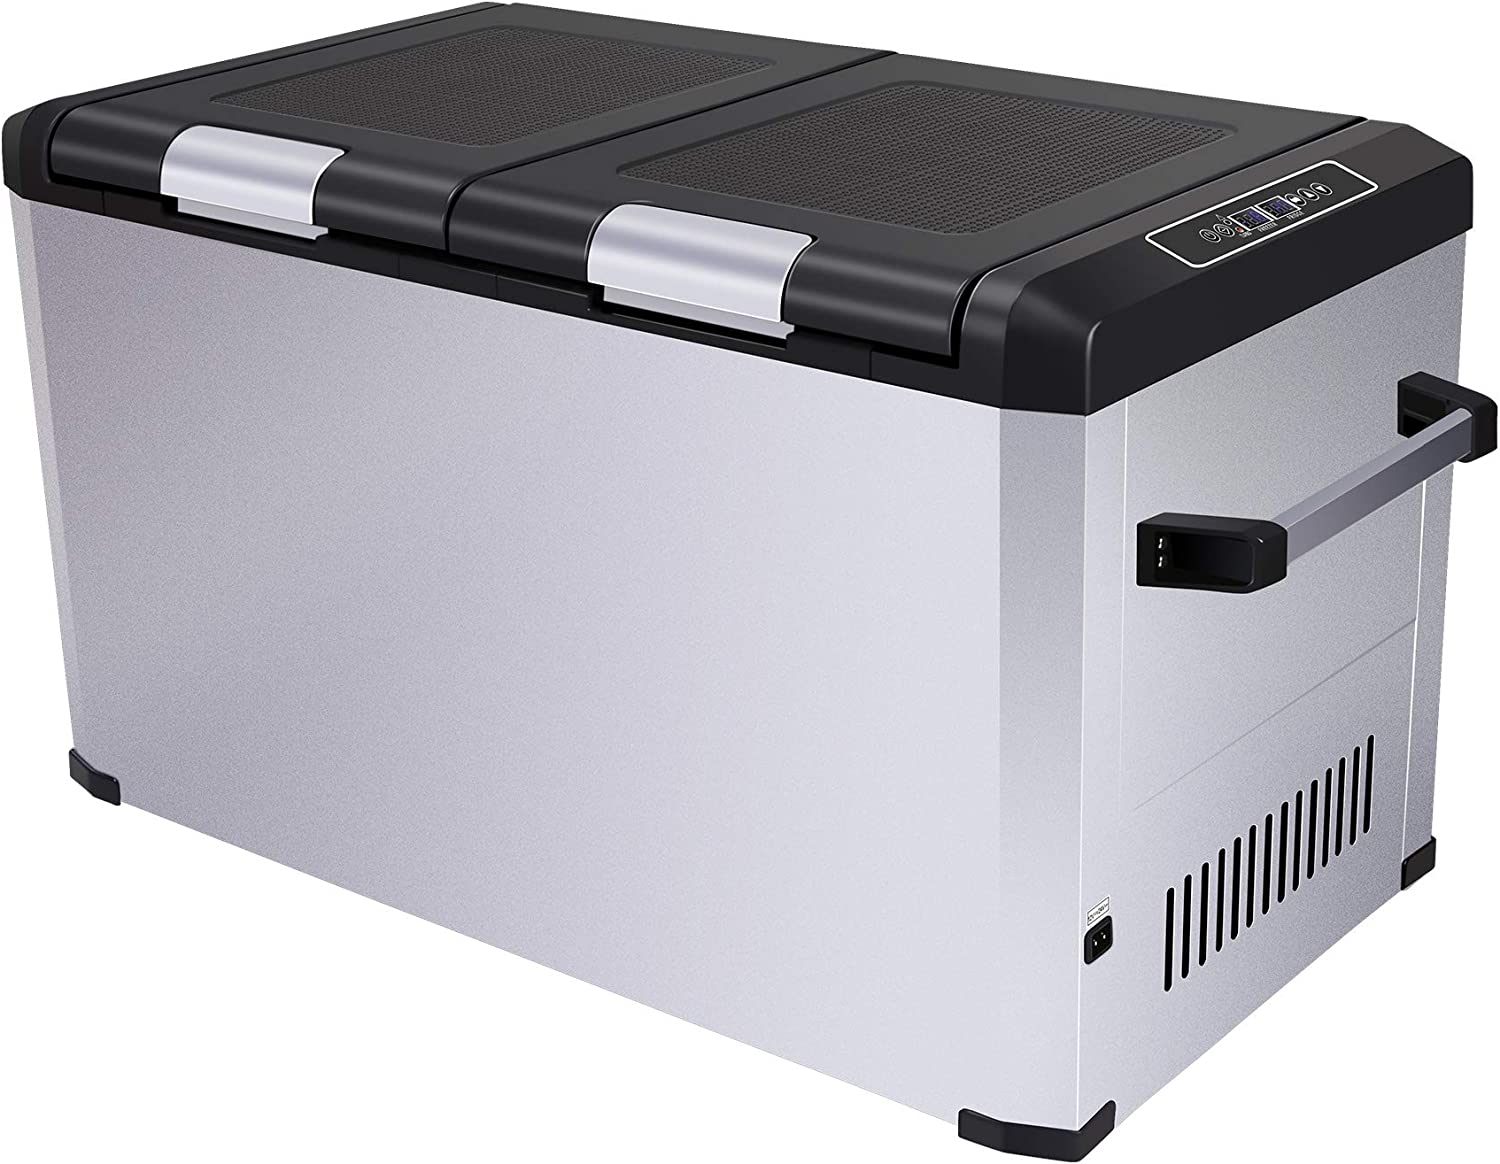 71hqg6nuK6L. AC SL1500 The Six Best Chest Freezers for Garage for 2021 (Review)